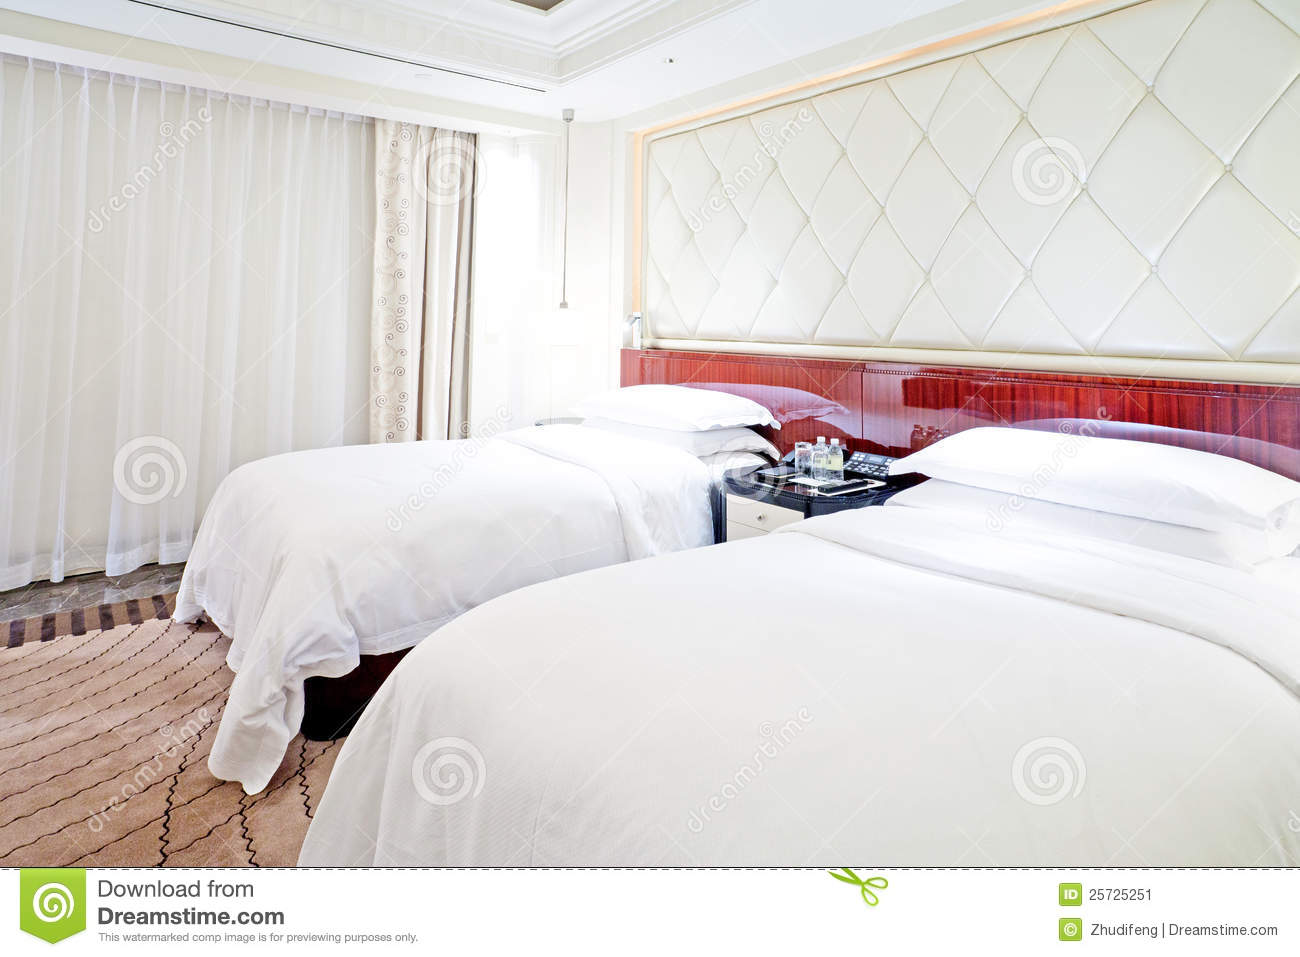 Bed in live room